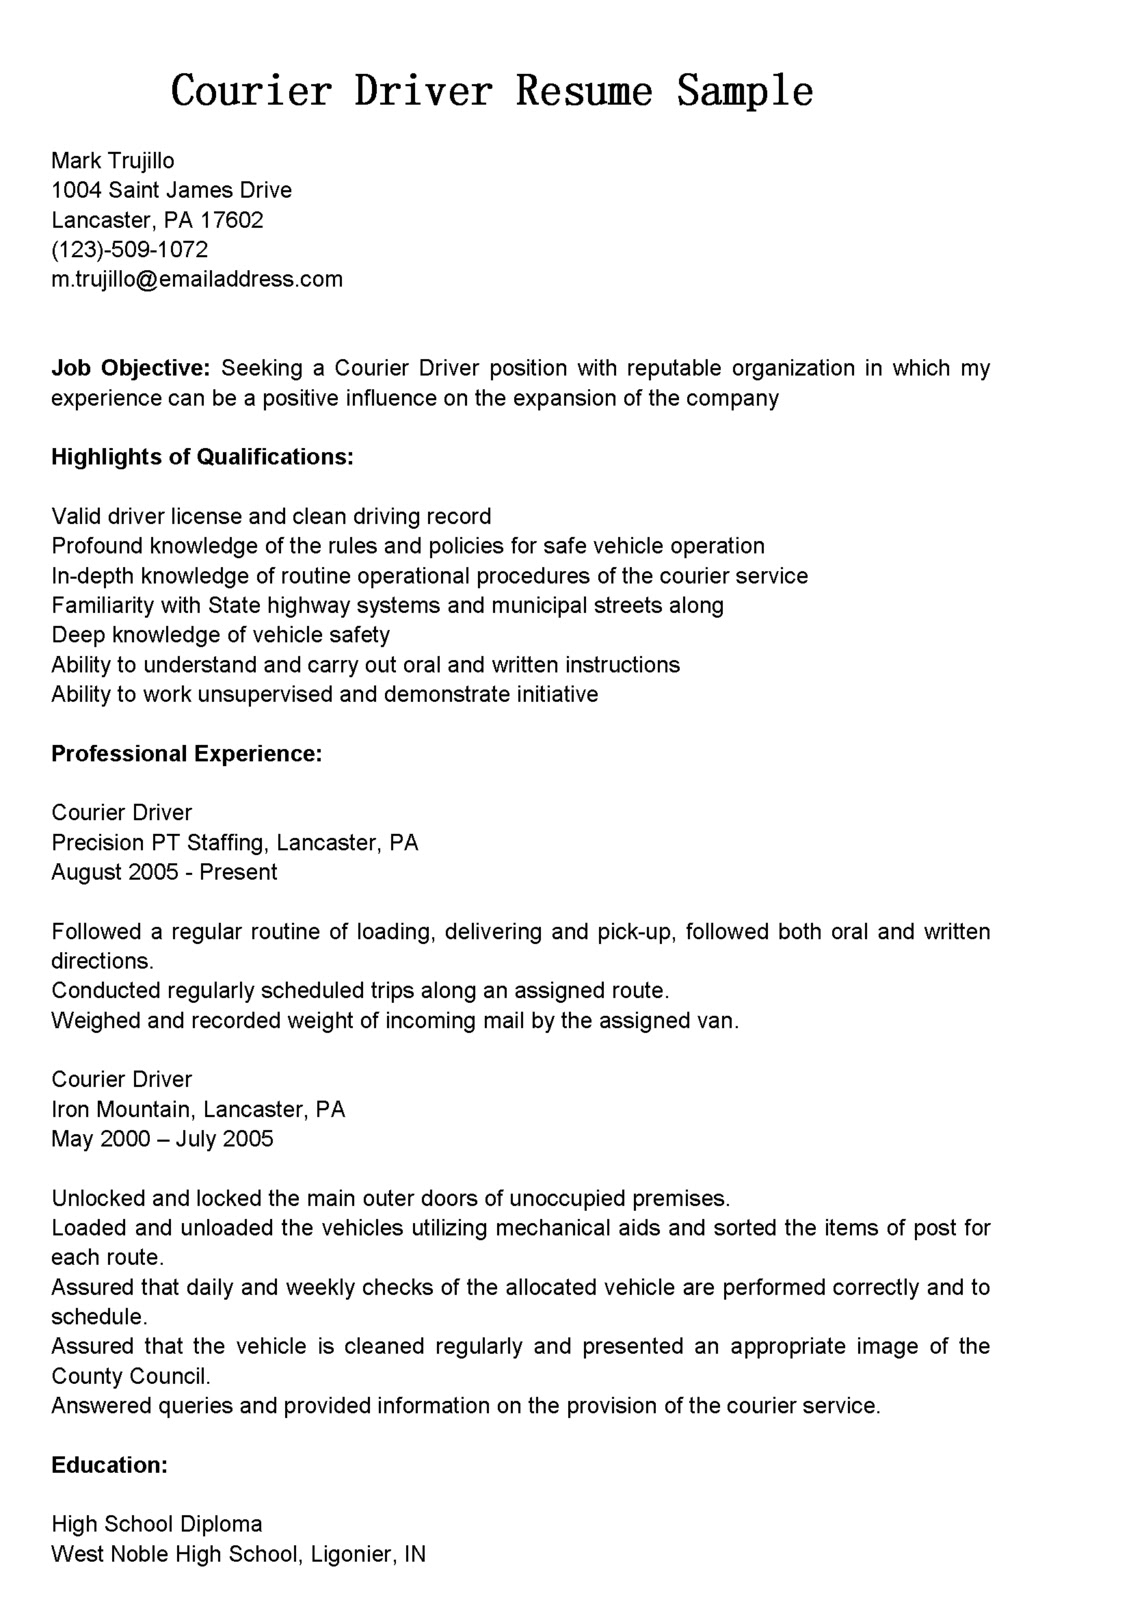 courier service resume aaaaeroincus seductive resume templates best examples for all carterusaus extraordinary dance resume stunning post